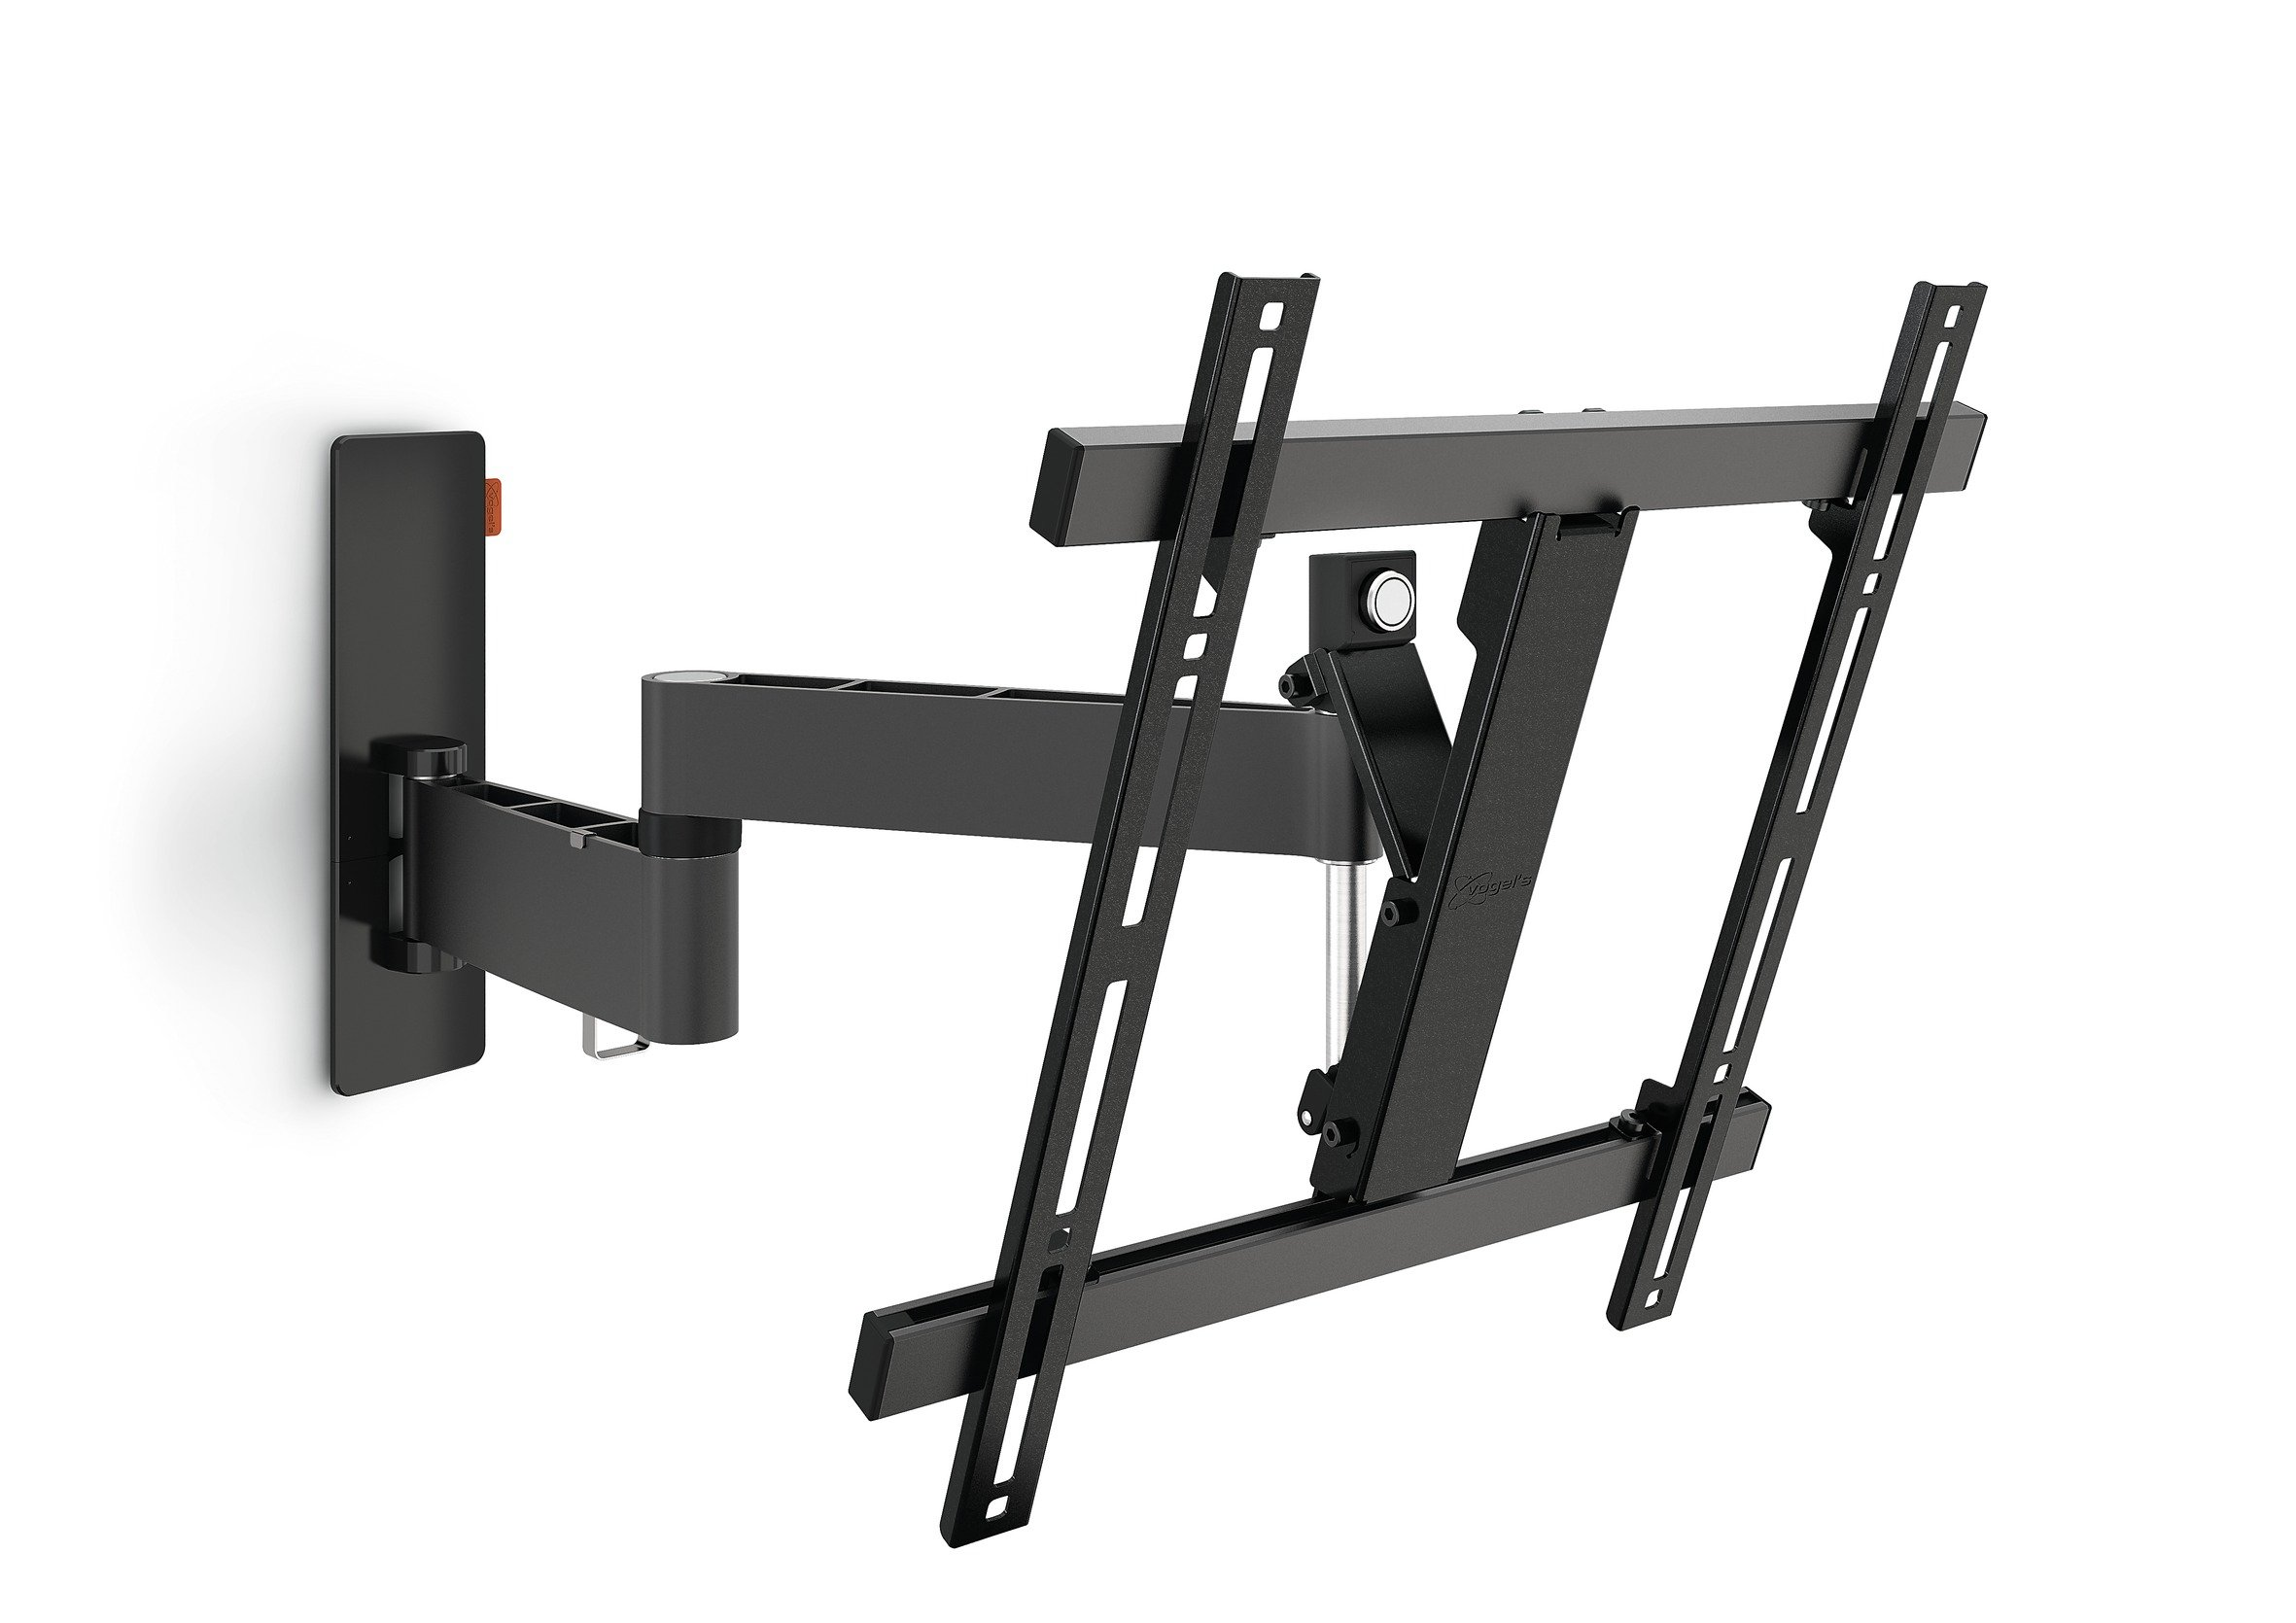 Vogel's TV Wall Mount 180° Articulating Swivel and Tilt - WALL series, WALL 2245B Wall Mount for 32 to 55 inch TV, Black